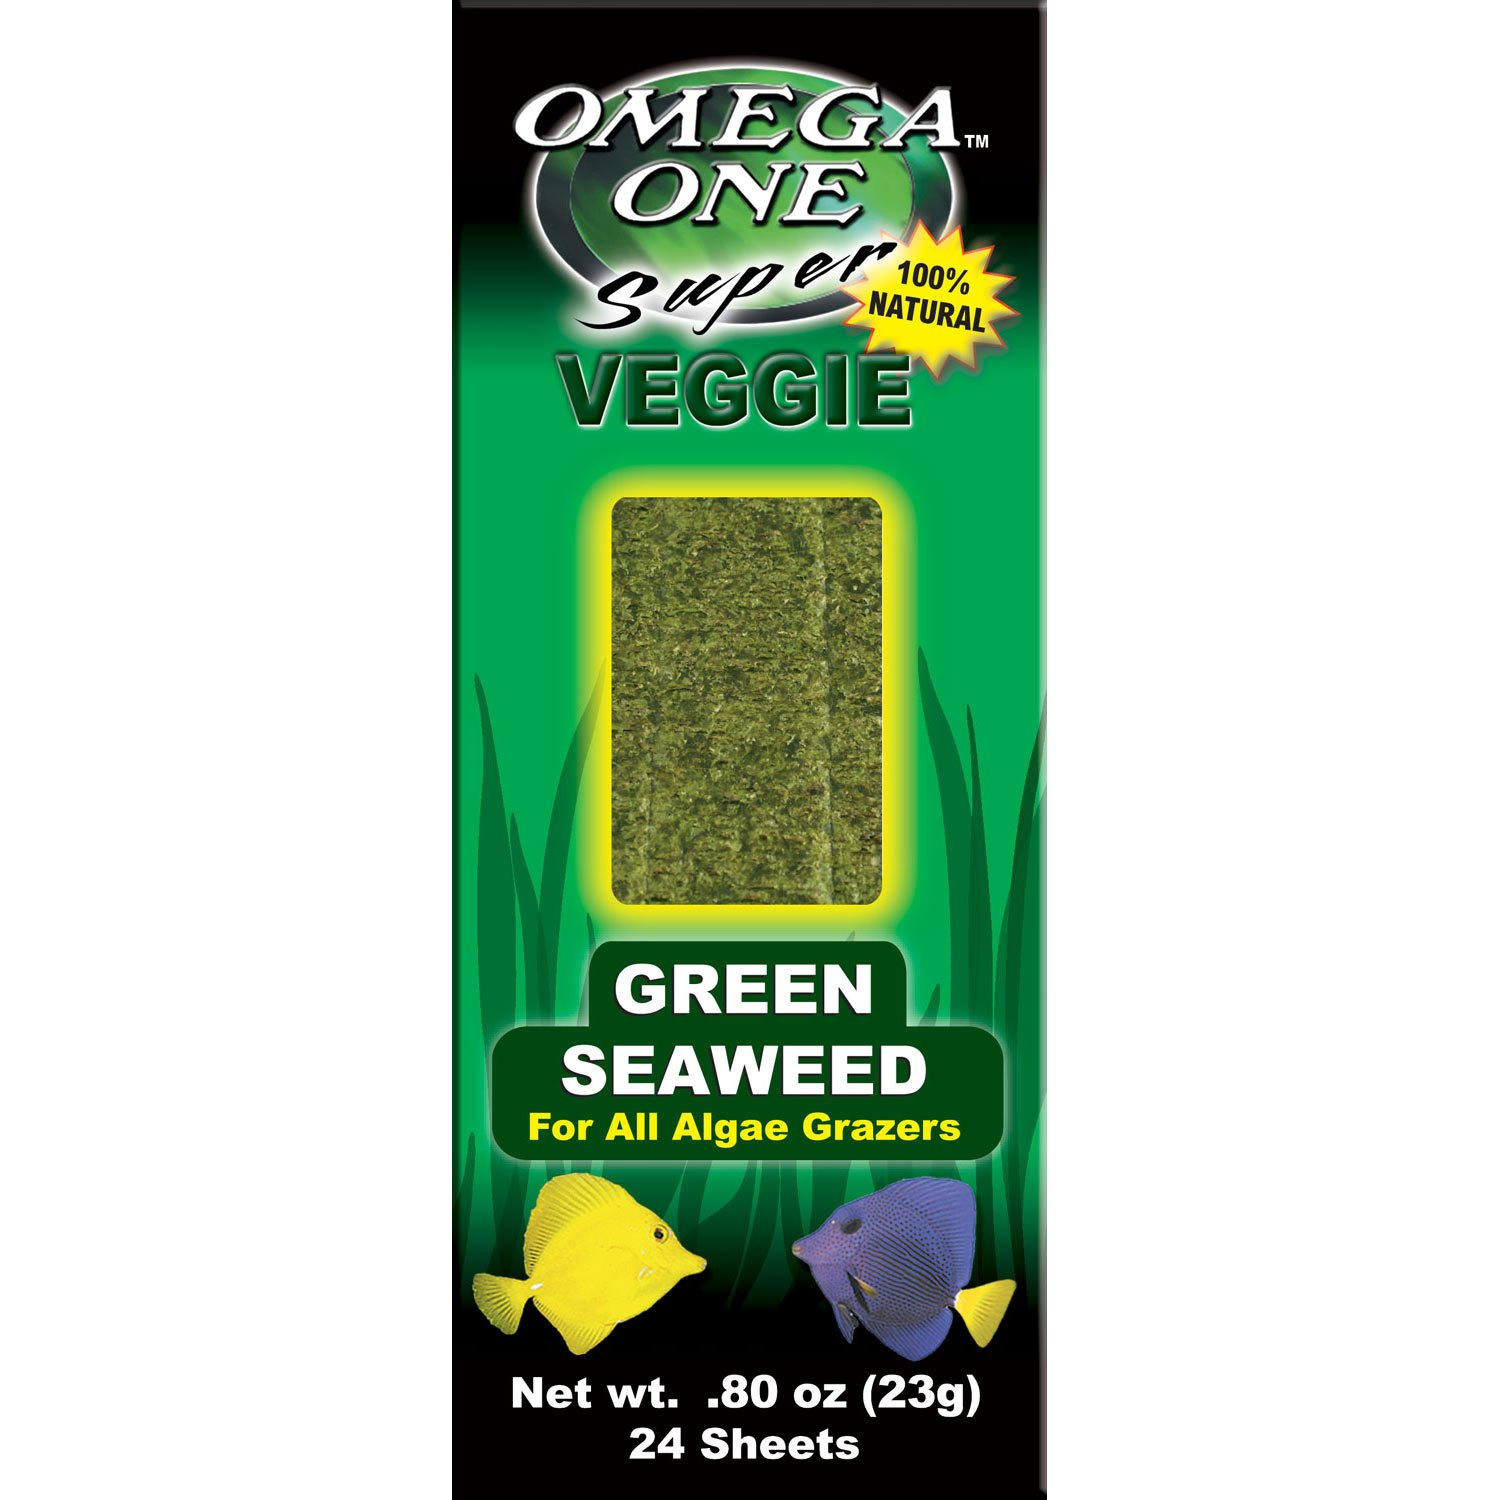 Omega One Seaweed Green 24 sheets